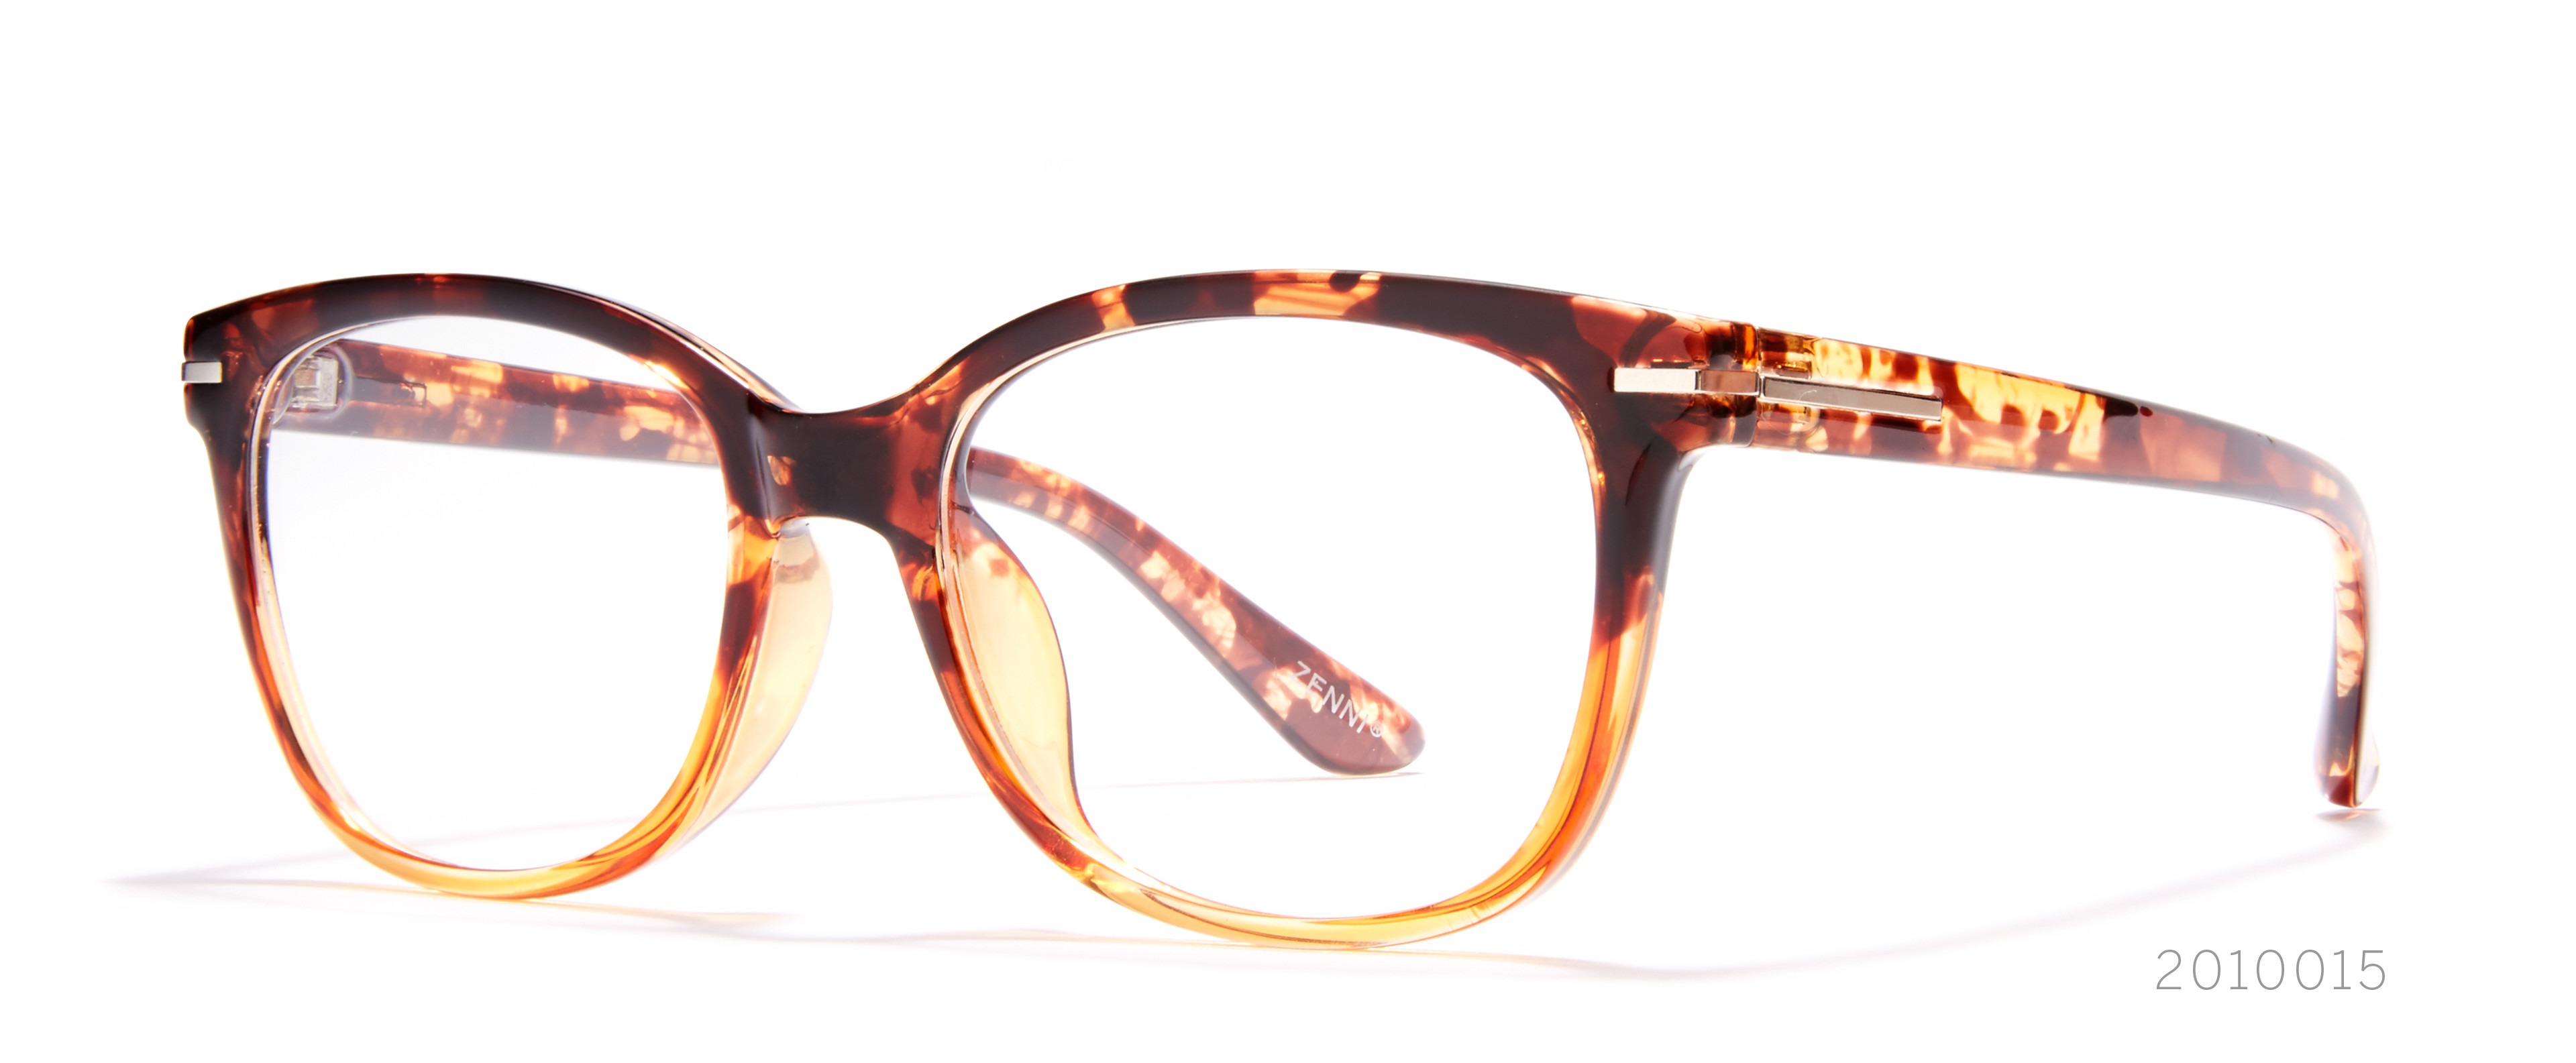 womens statement glasses